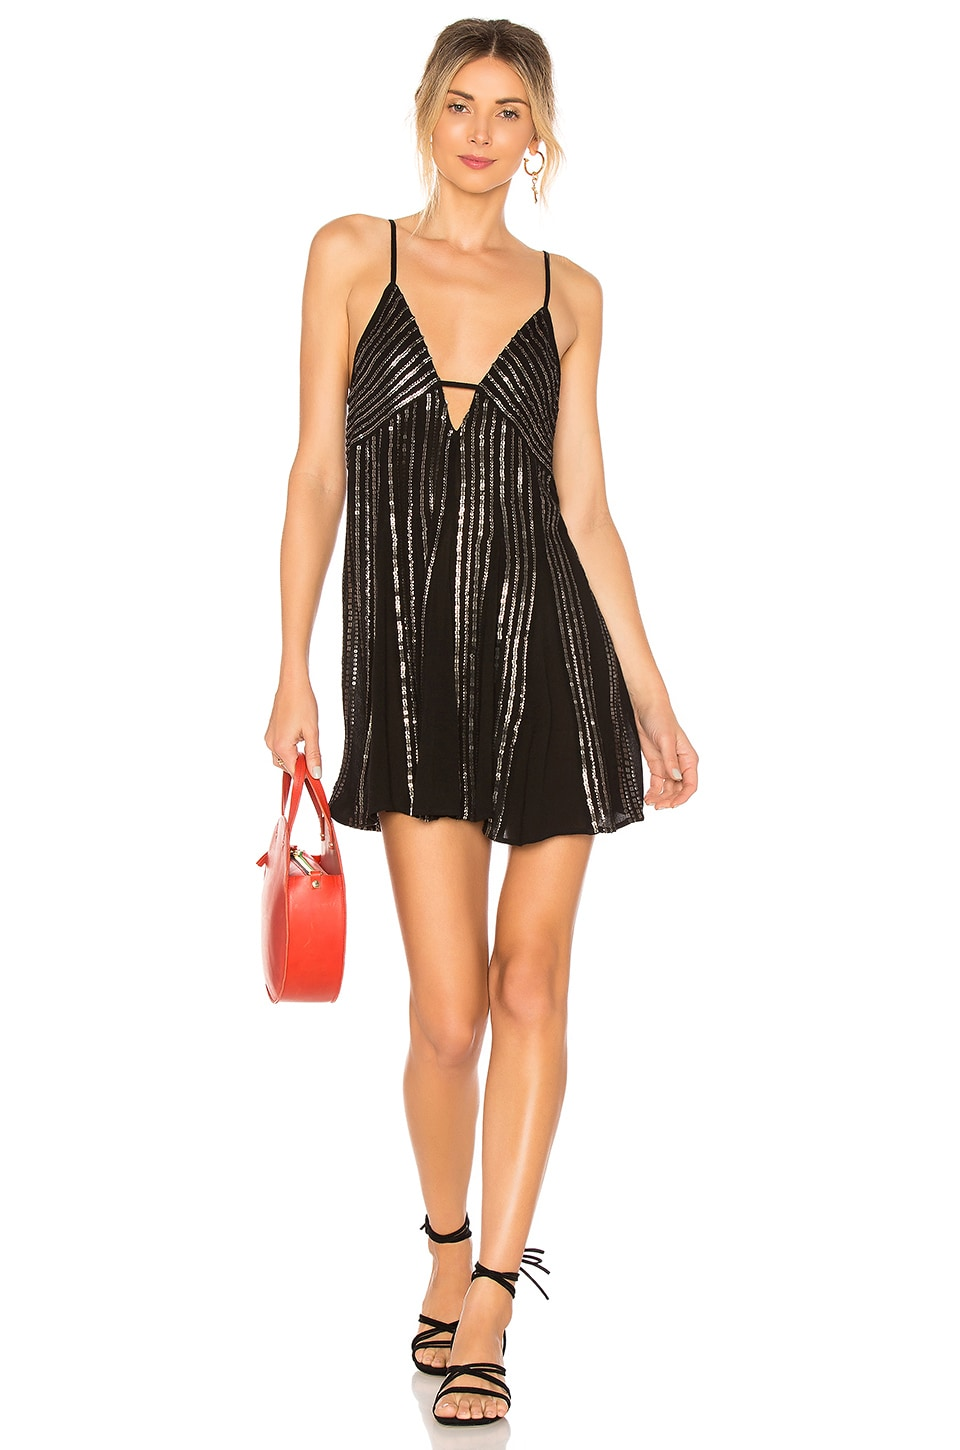 Free People Here She Is Embellished Dress in Black